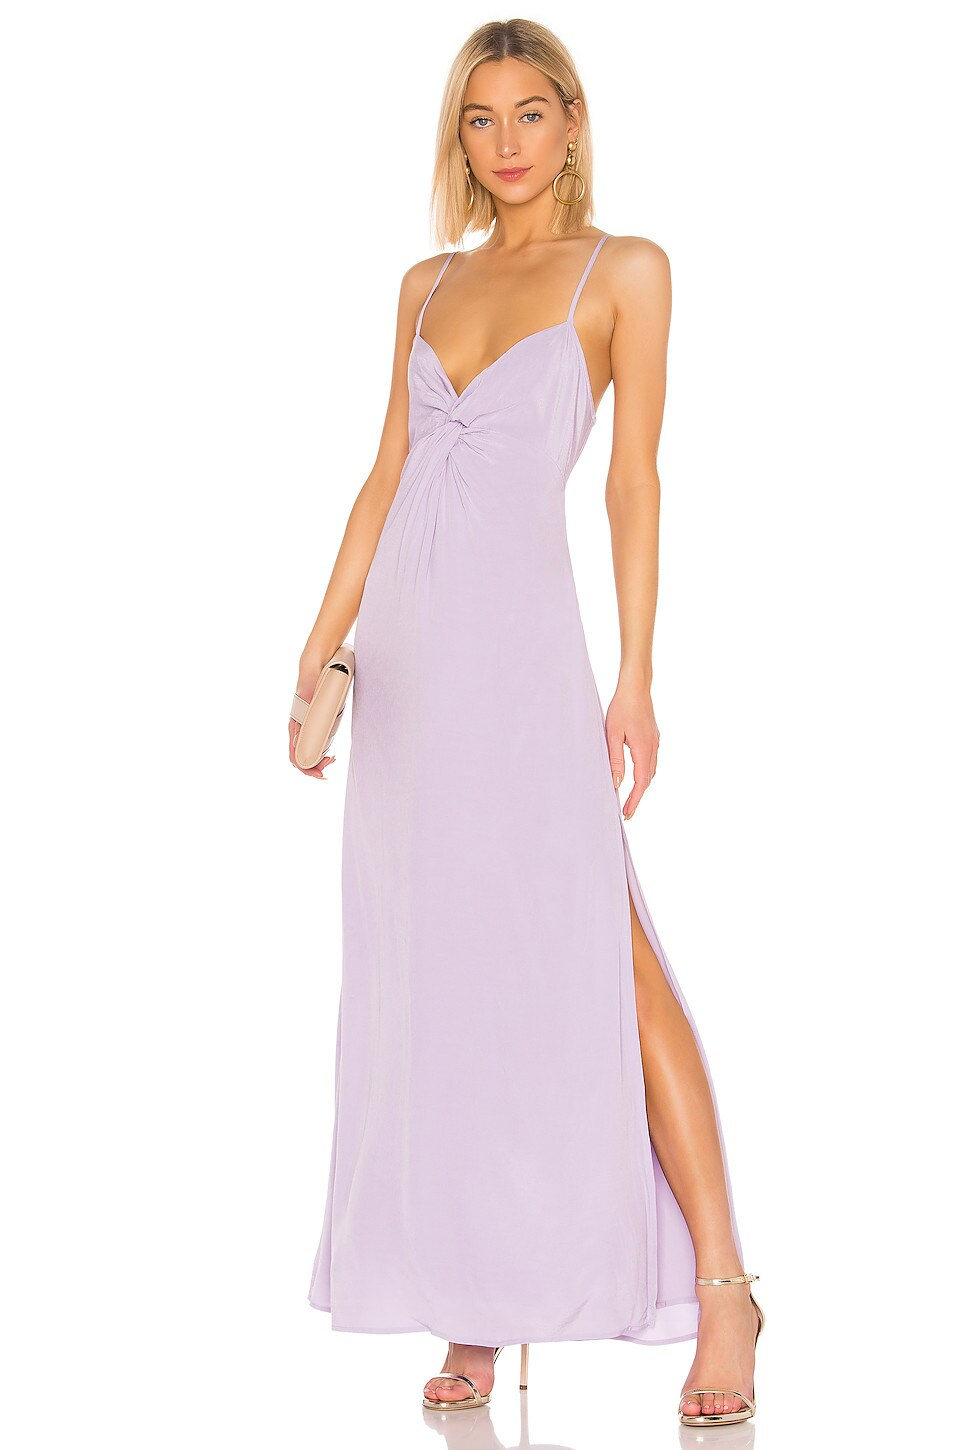 Capulet Judith Knot Front Maxi Dress in Lavender